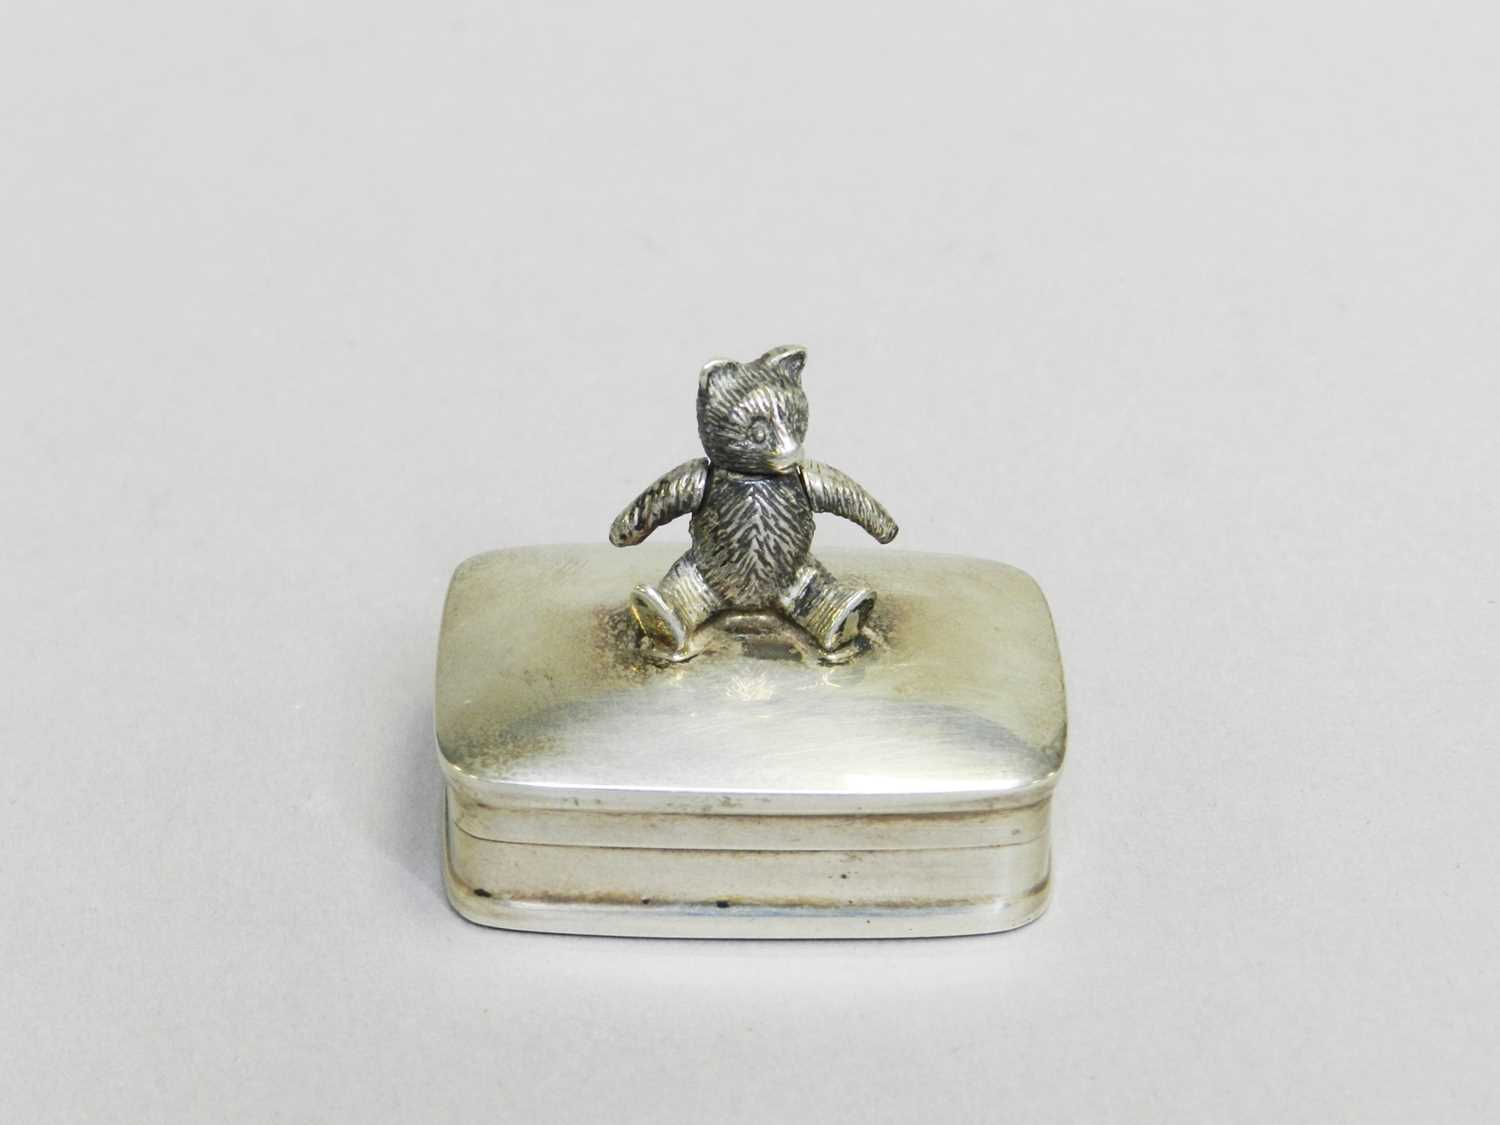 Lot 7 - A sterling silver pill box with teddy bear finial